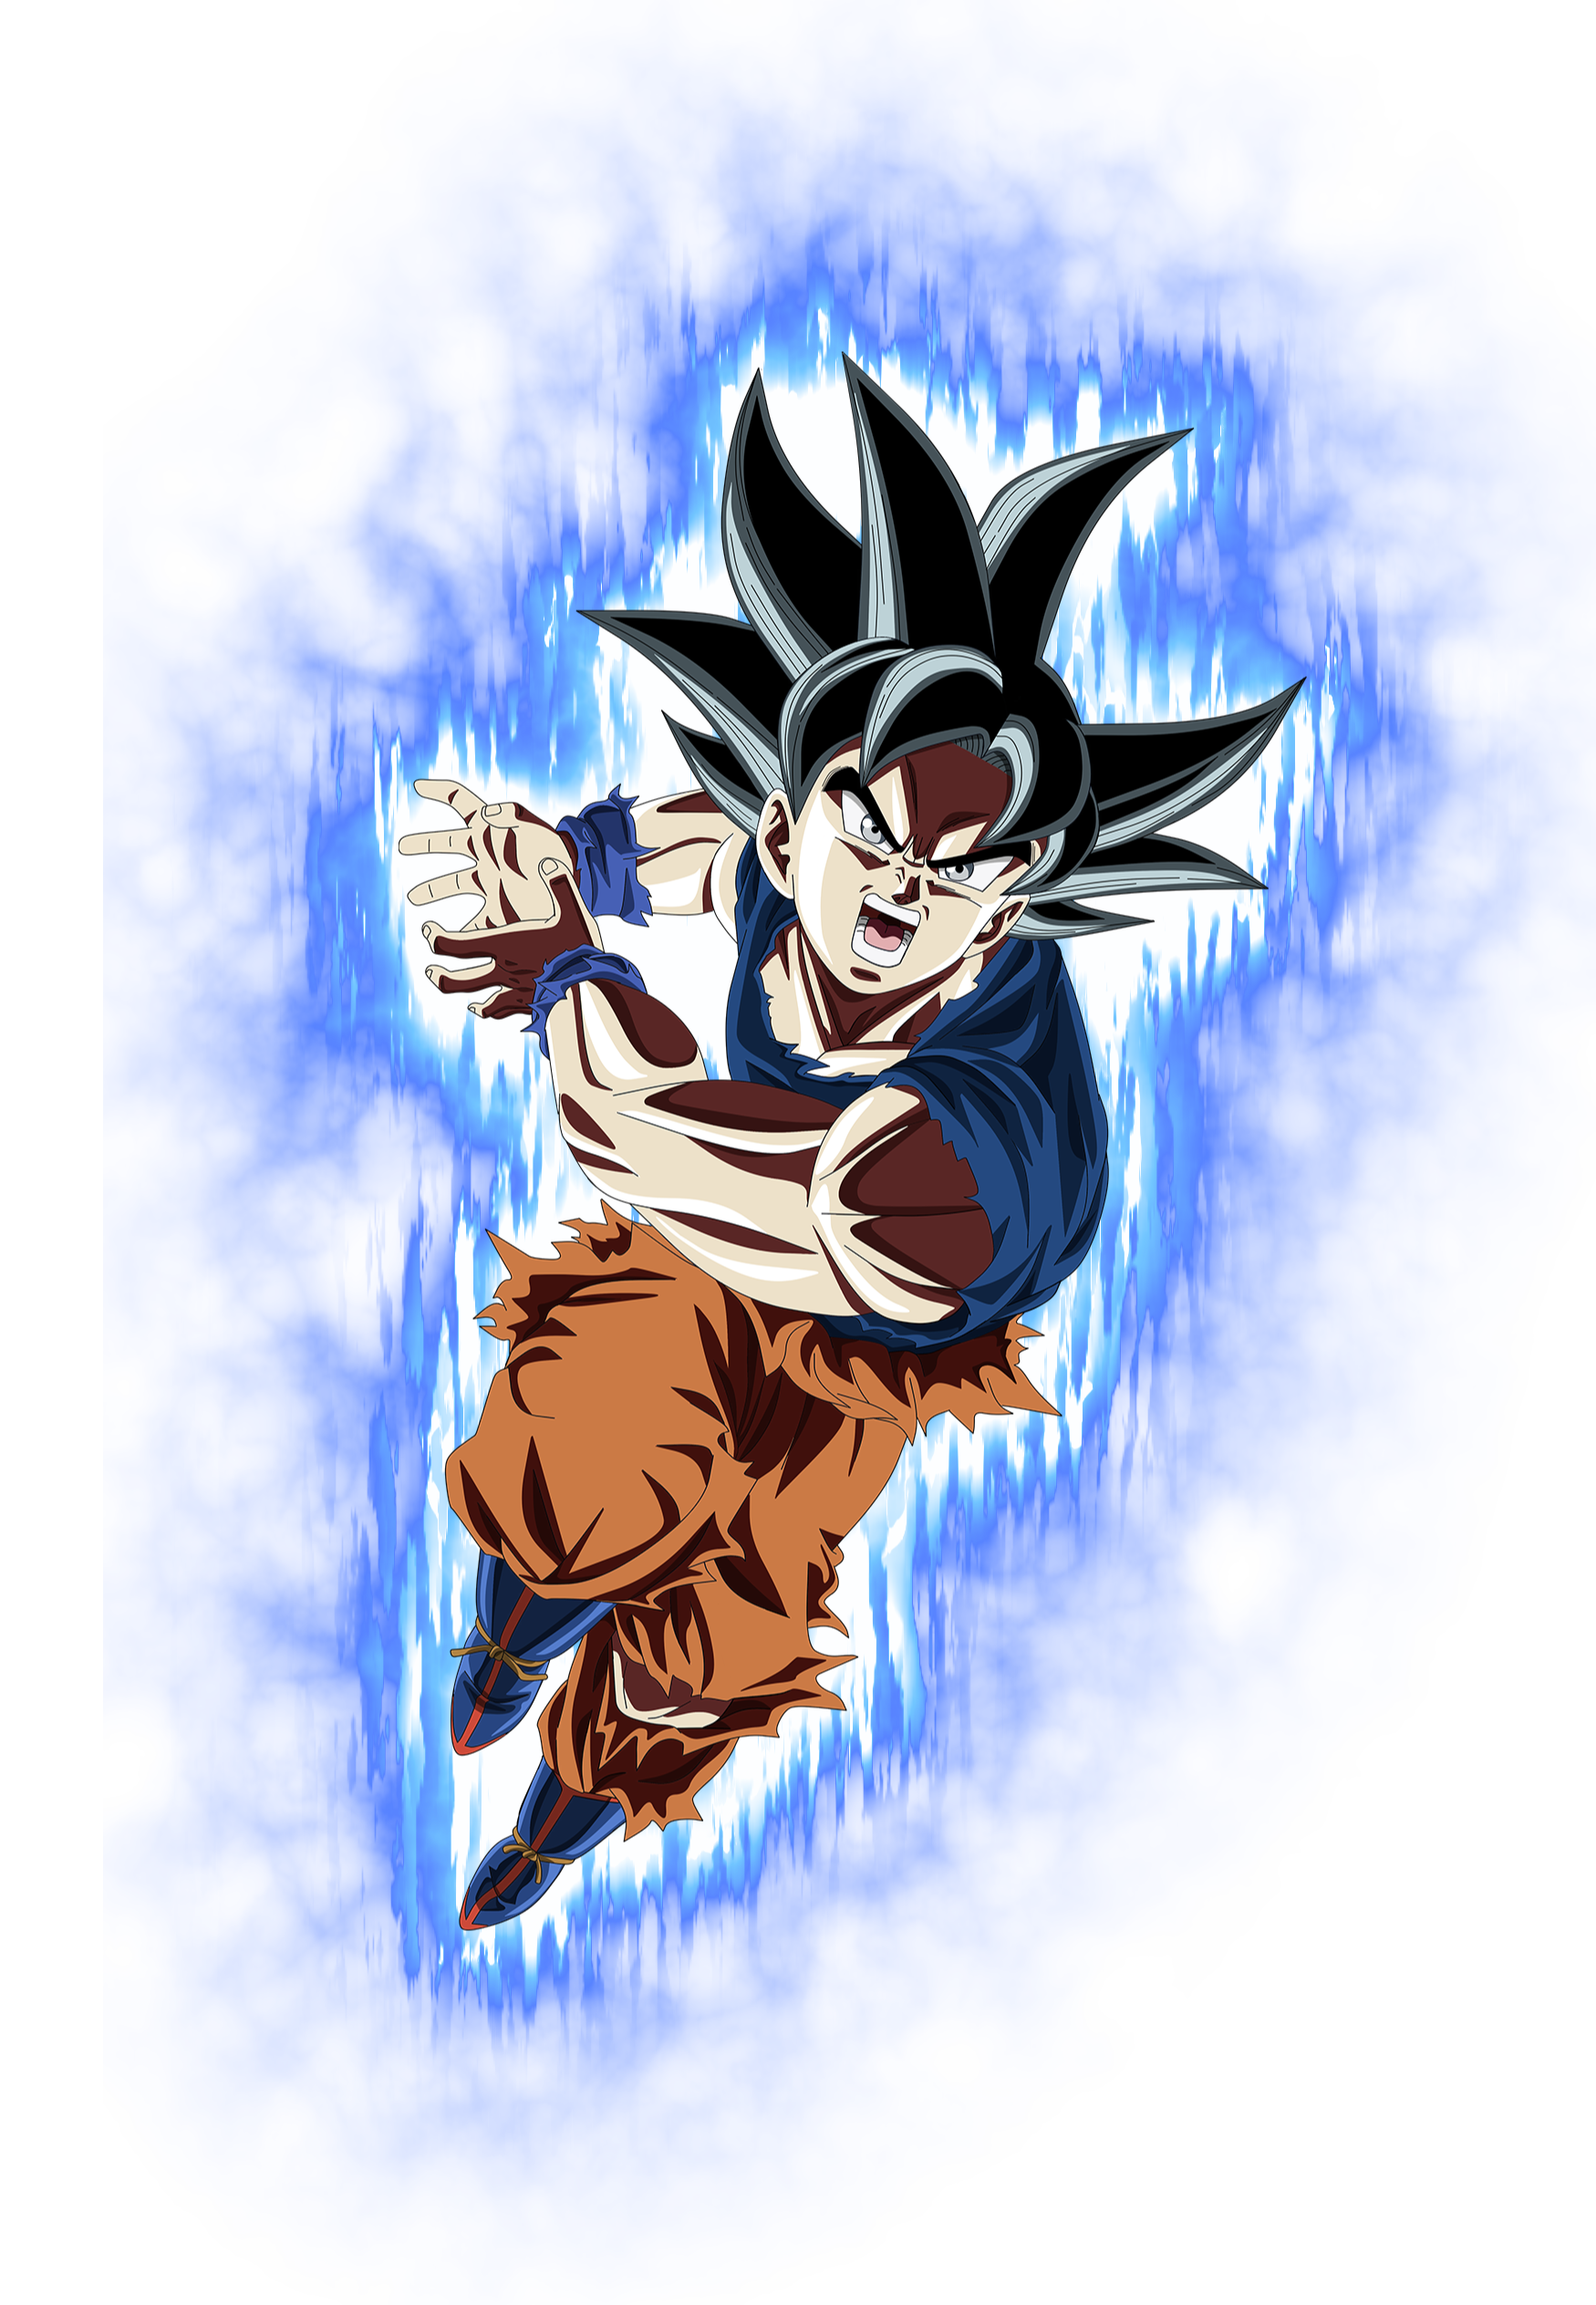 ui goku kamehameha by blackflim on deviantart ui goku kamehameha by blackflim on